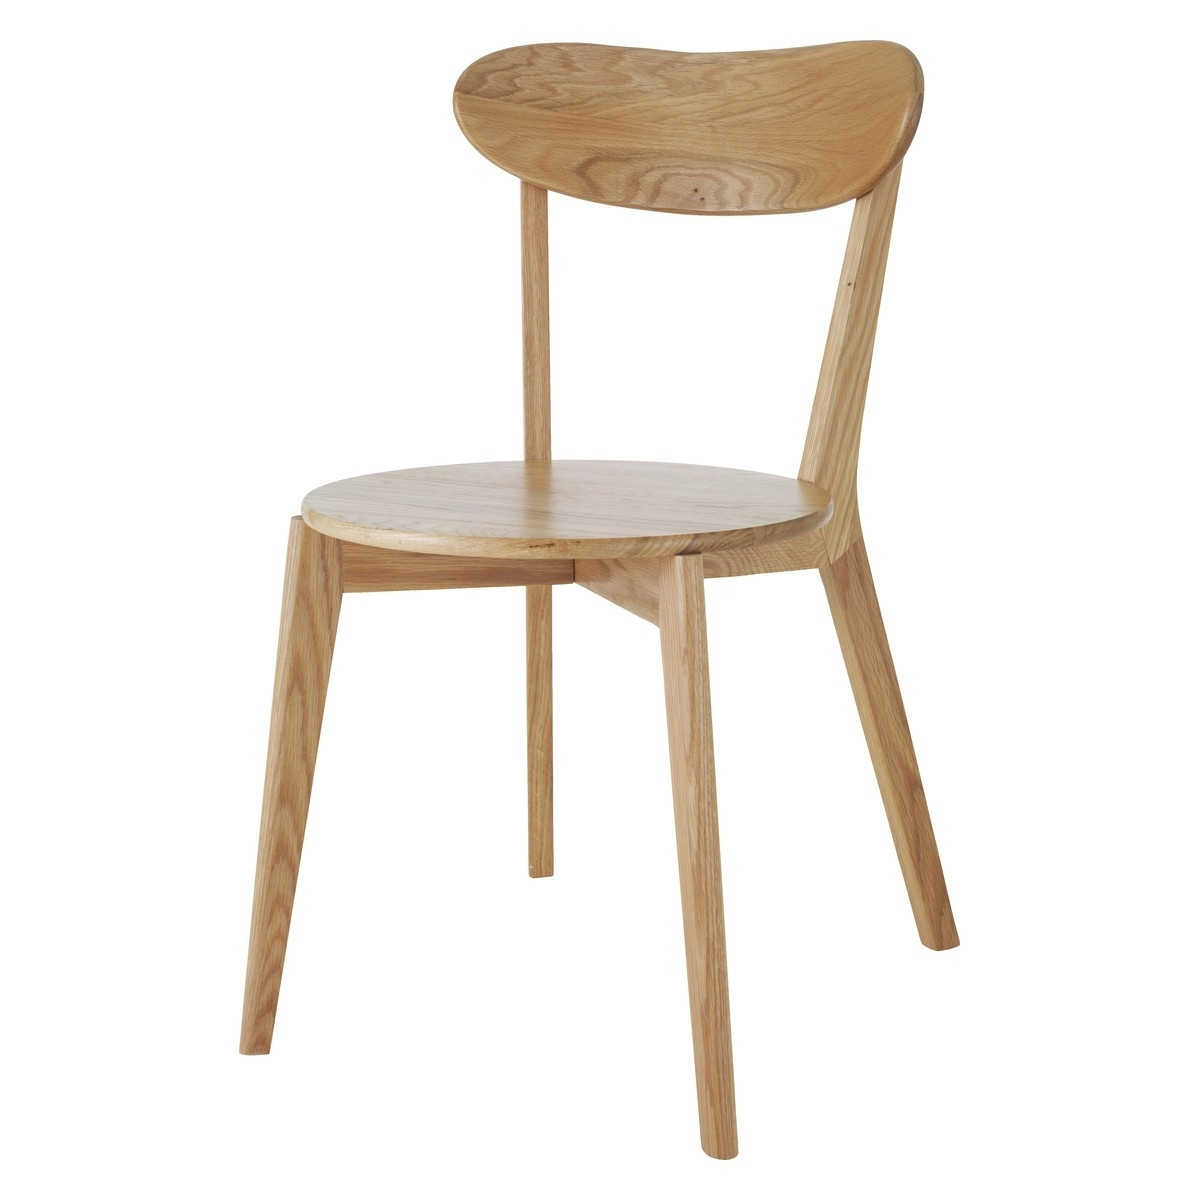 Buy Now At Habitat Uk Within Favorite Oak Dining Chairs (View 9 of 25)